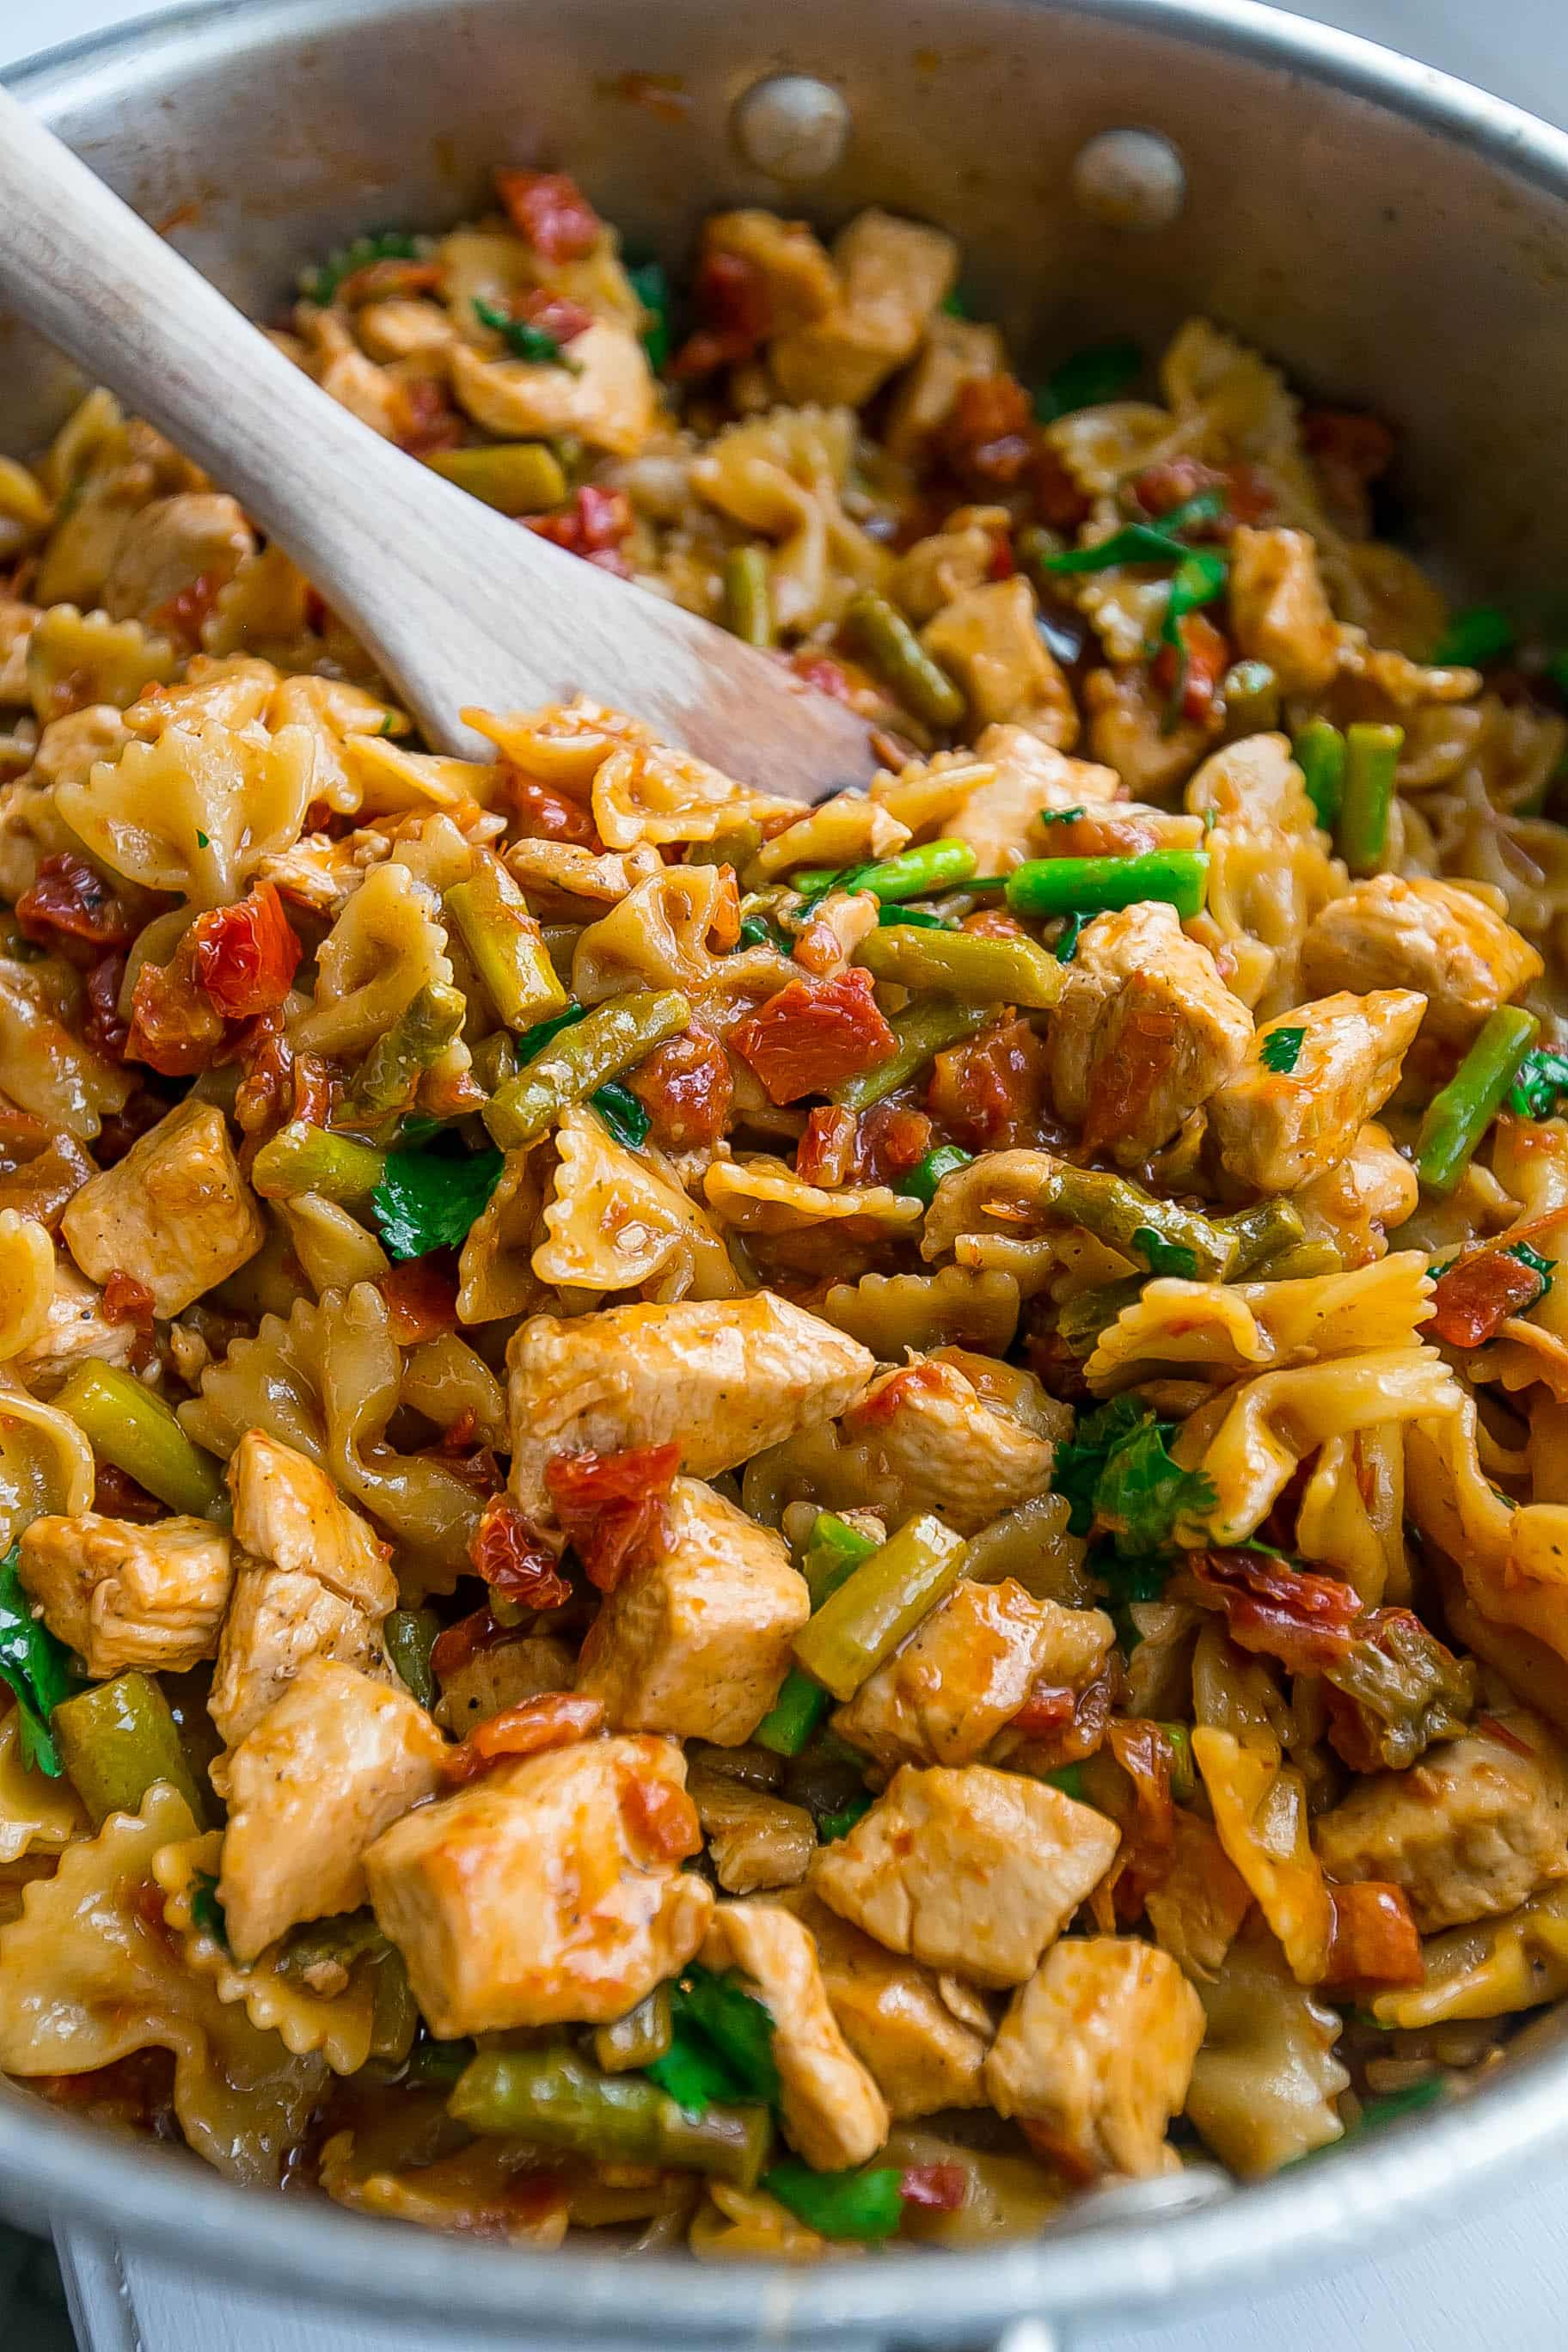 This is the most delicious one pot chicken pasta made with bruschetta fixings! Simple and under 350 calories per serving!